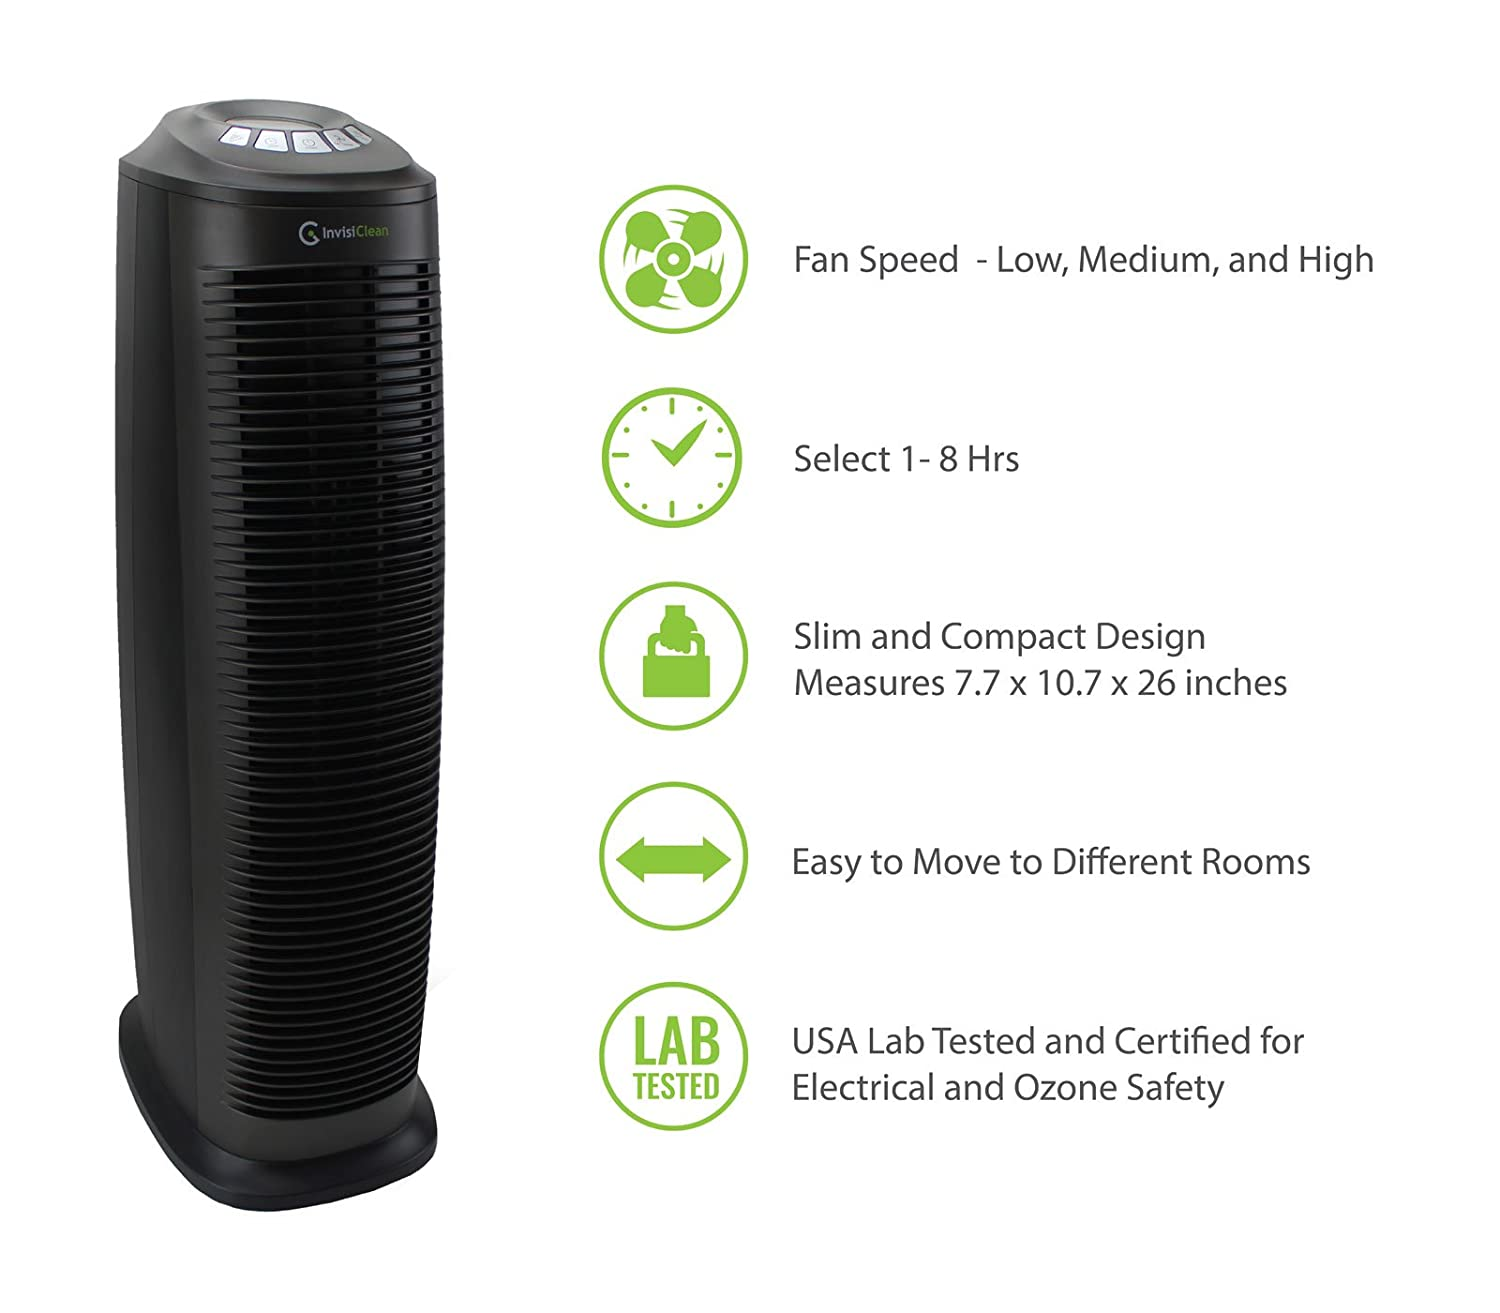 invisiclean 4-in-1 tower air purifier review